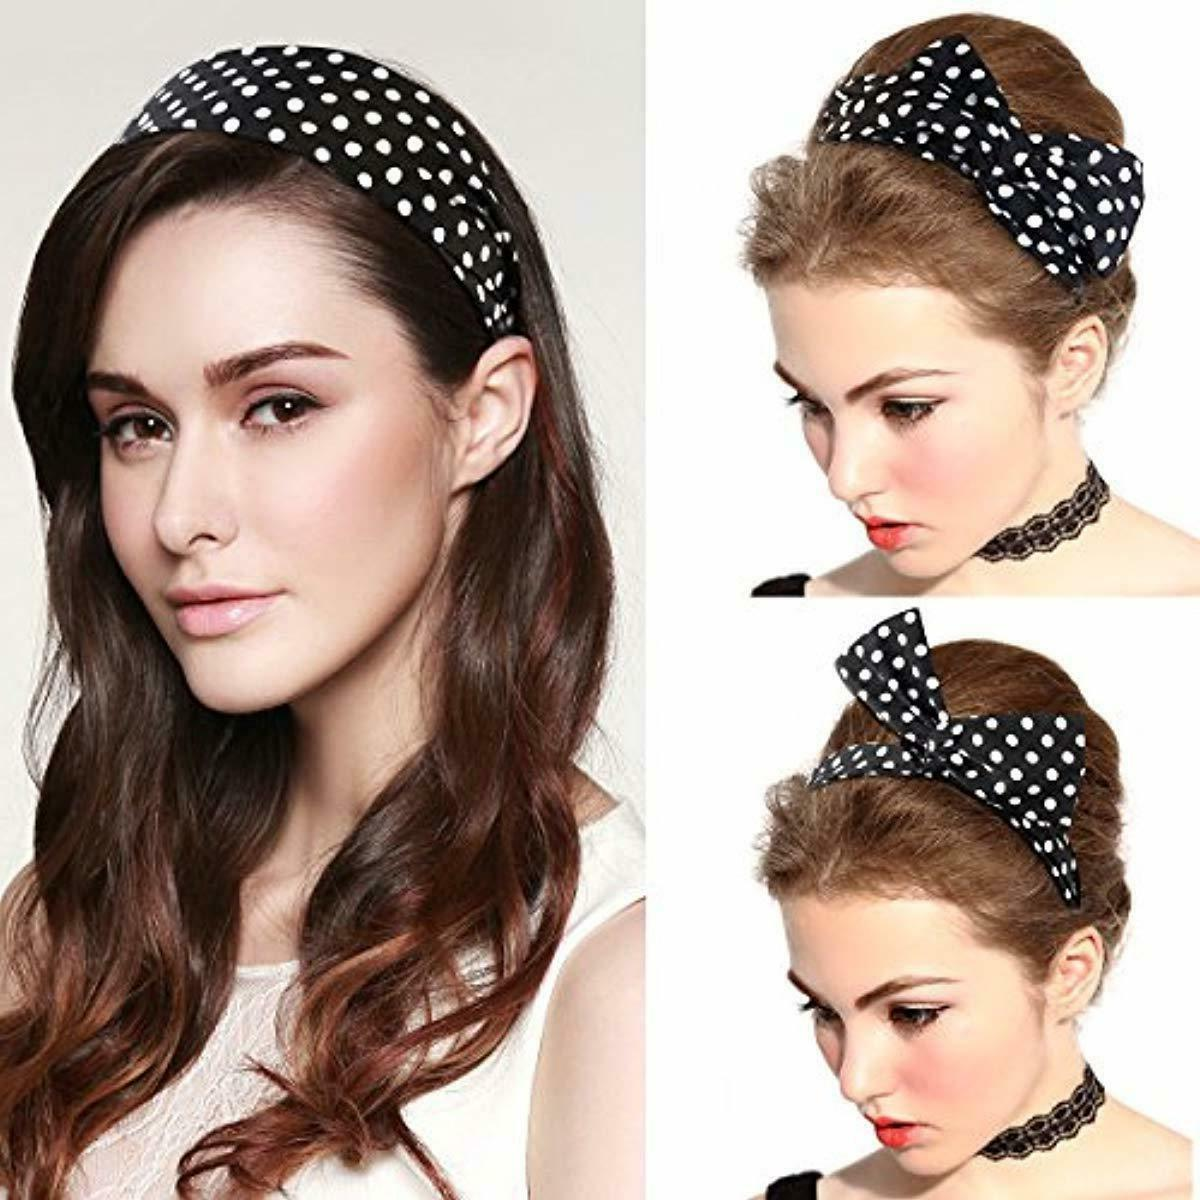 PIXNOR Bowknot Polka Dot Hair Women